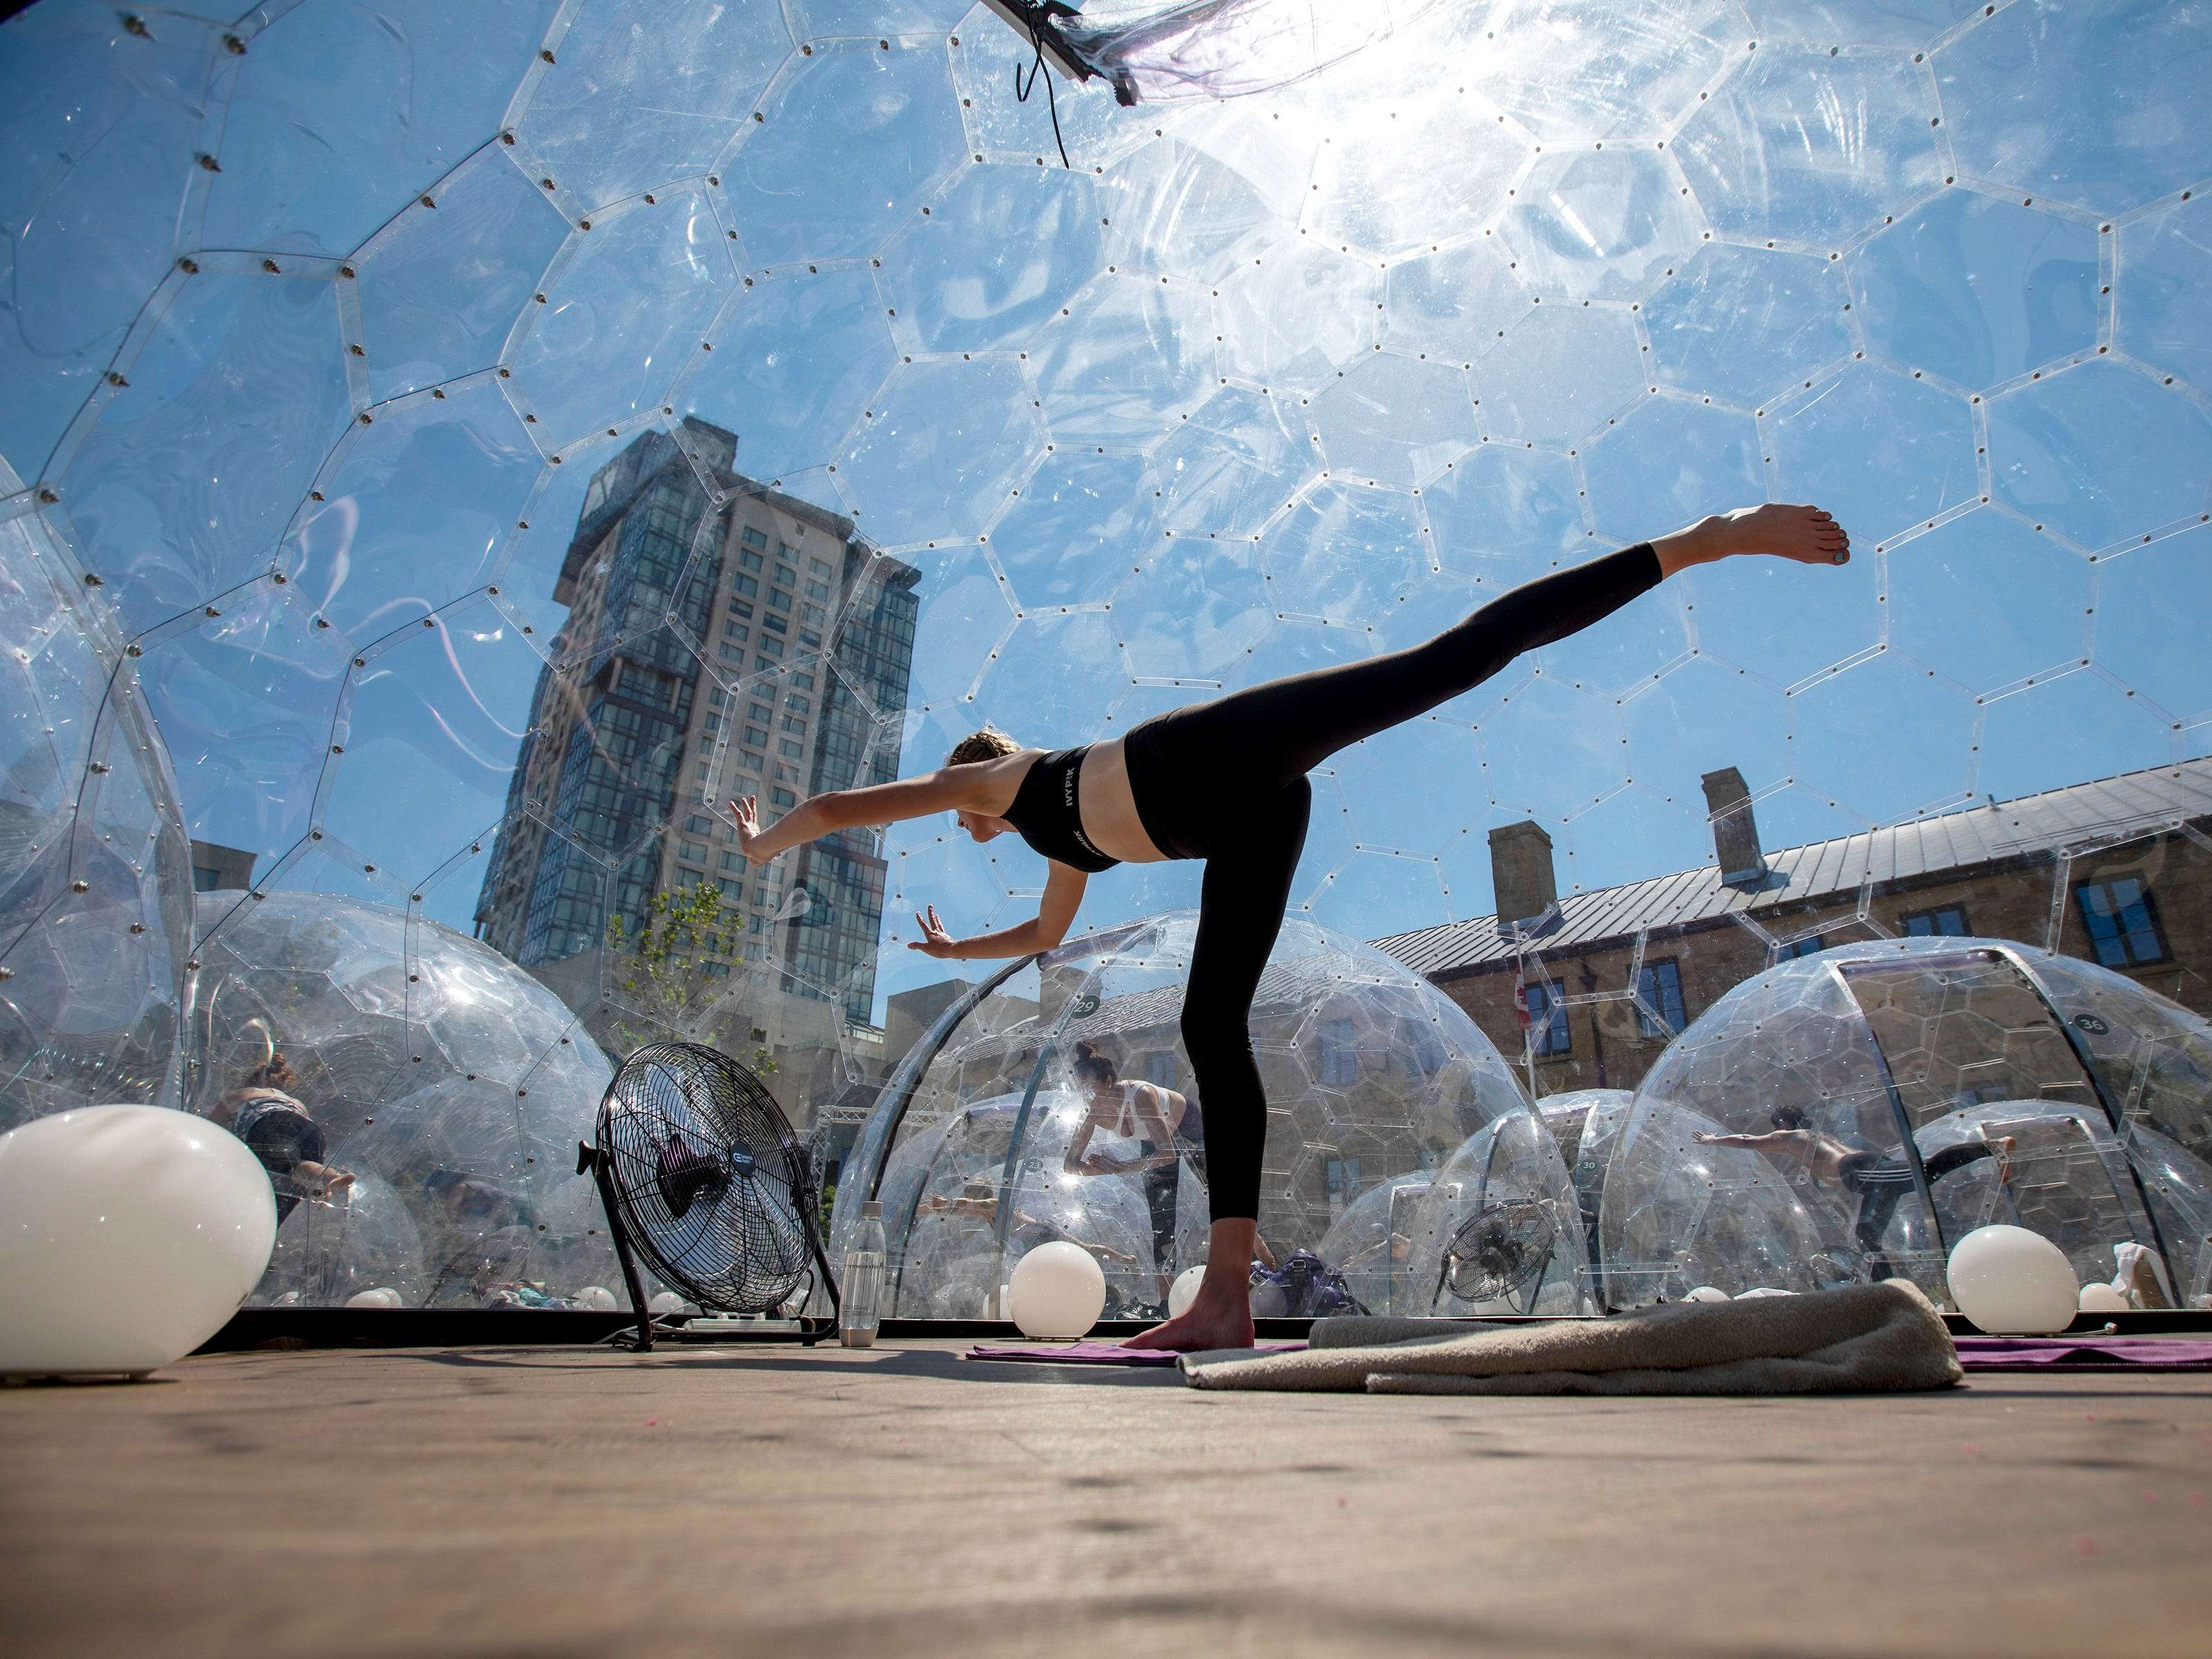 Giant Outdoor Domes Allow For Yoga While Social Distancing In Toronto Insider